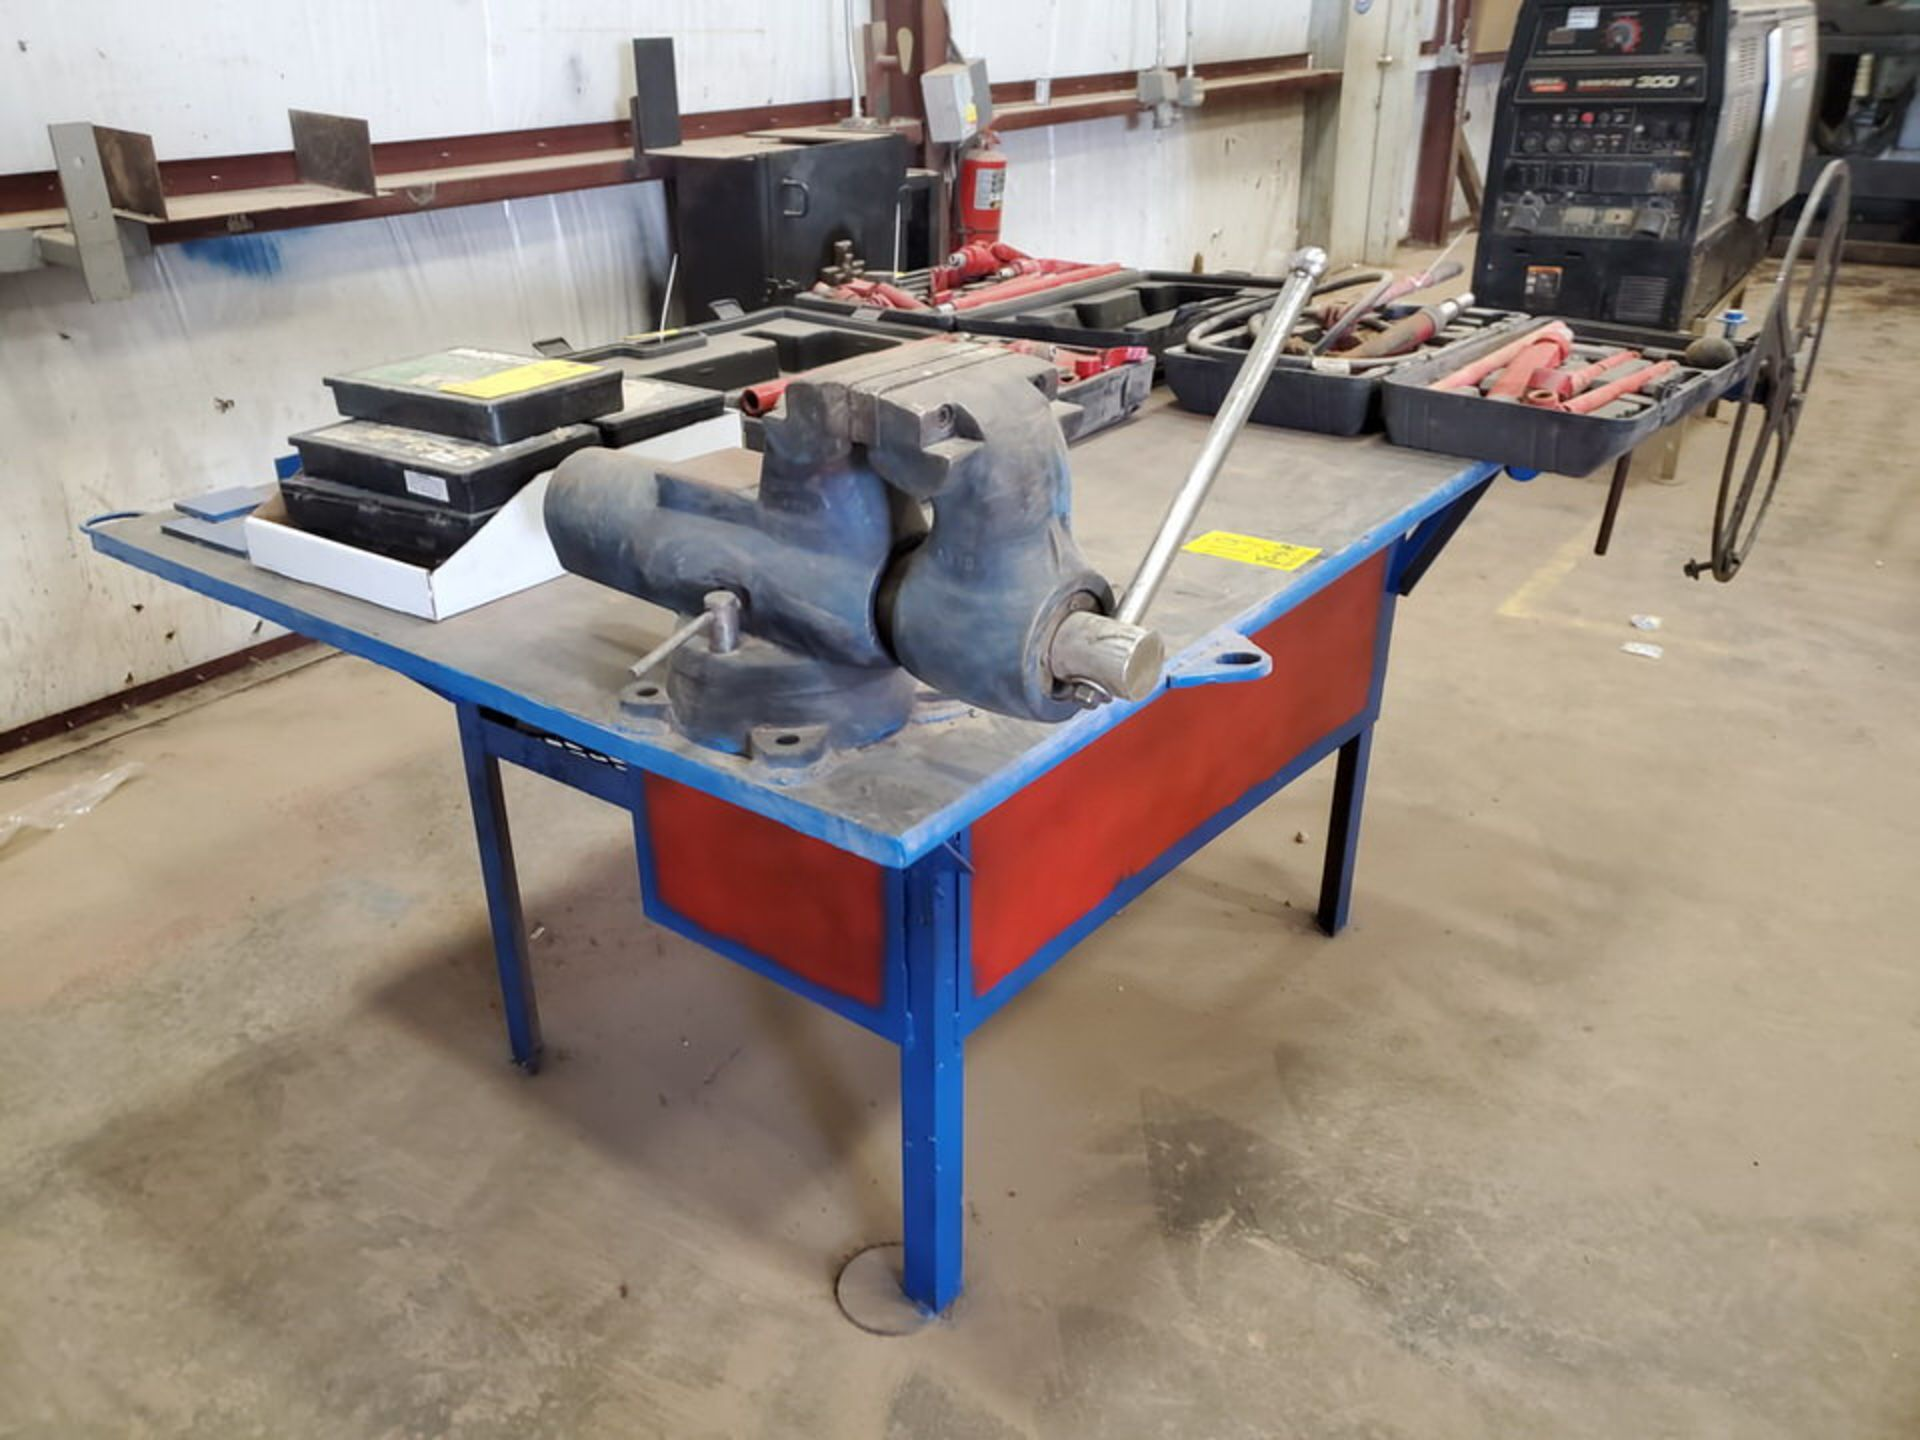 "Stl Welding Table W/ 6"" Vise 48"" x 70"" x 35""H (Material Excluded)"